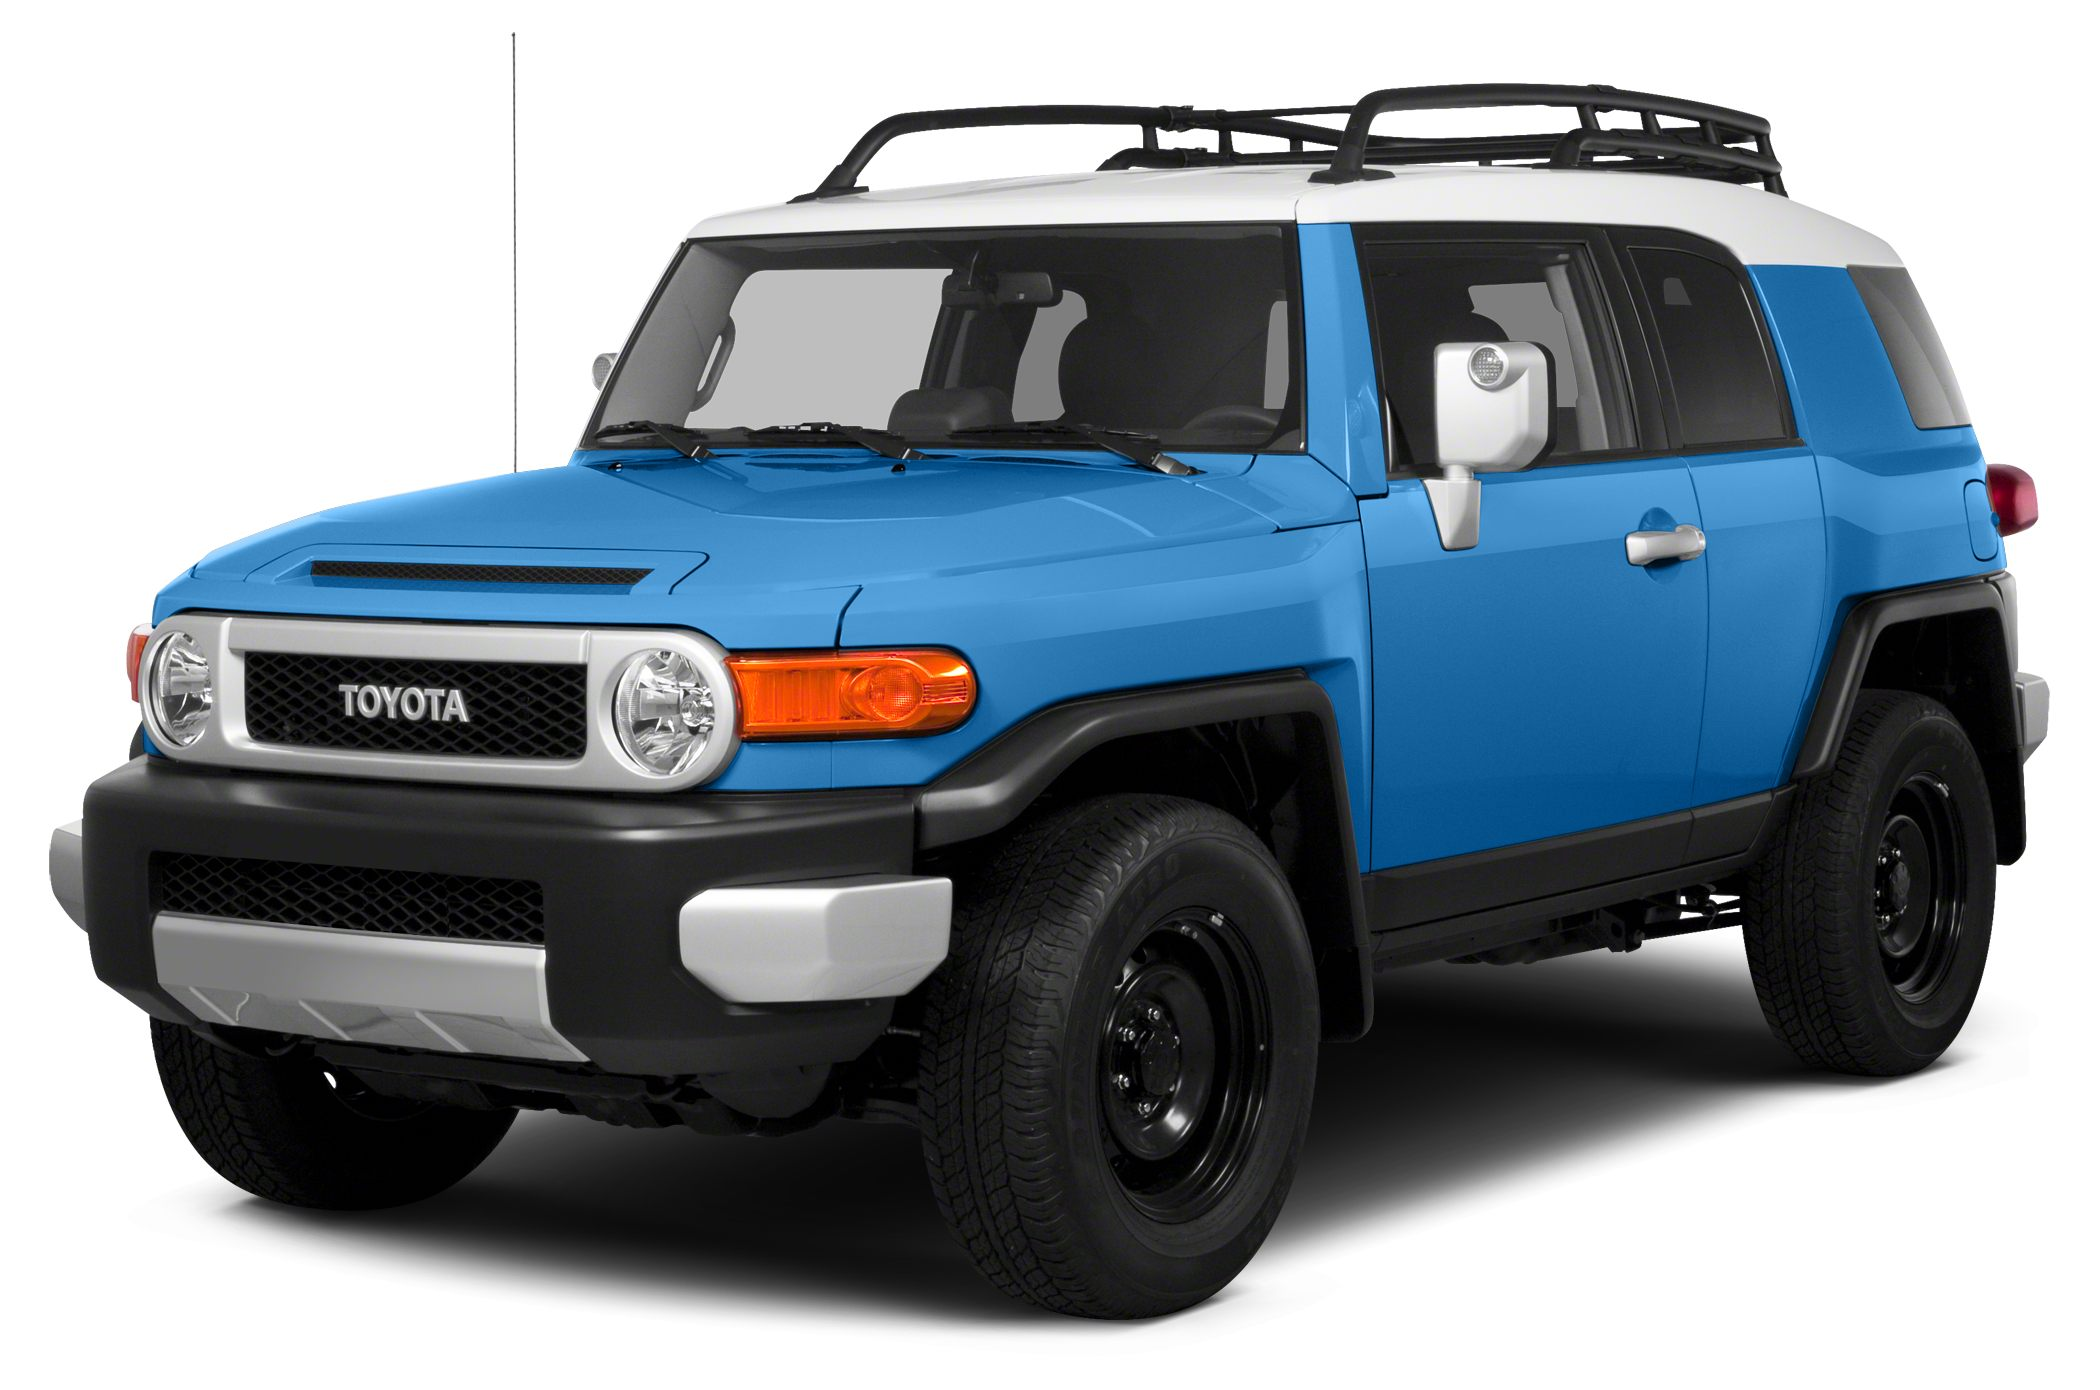 2014 Toyota FJ Cruiser Base CARFAX 1-Owner Extra Clean Heritage Blue exterior and Dark Charcoal